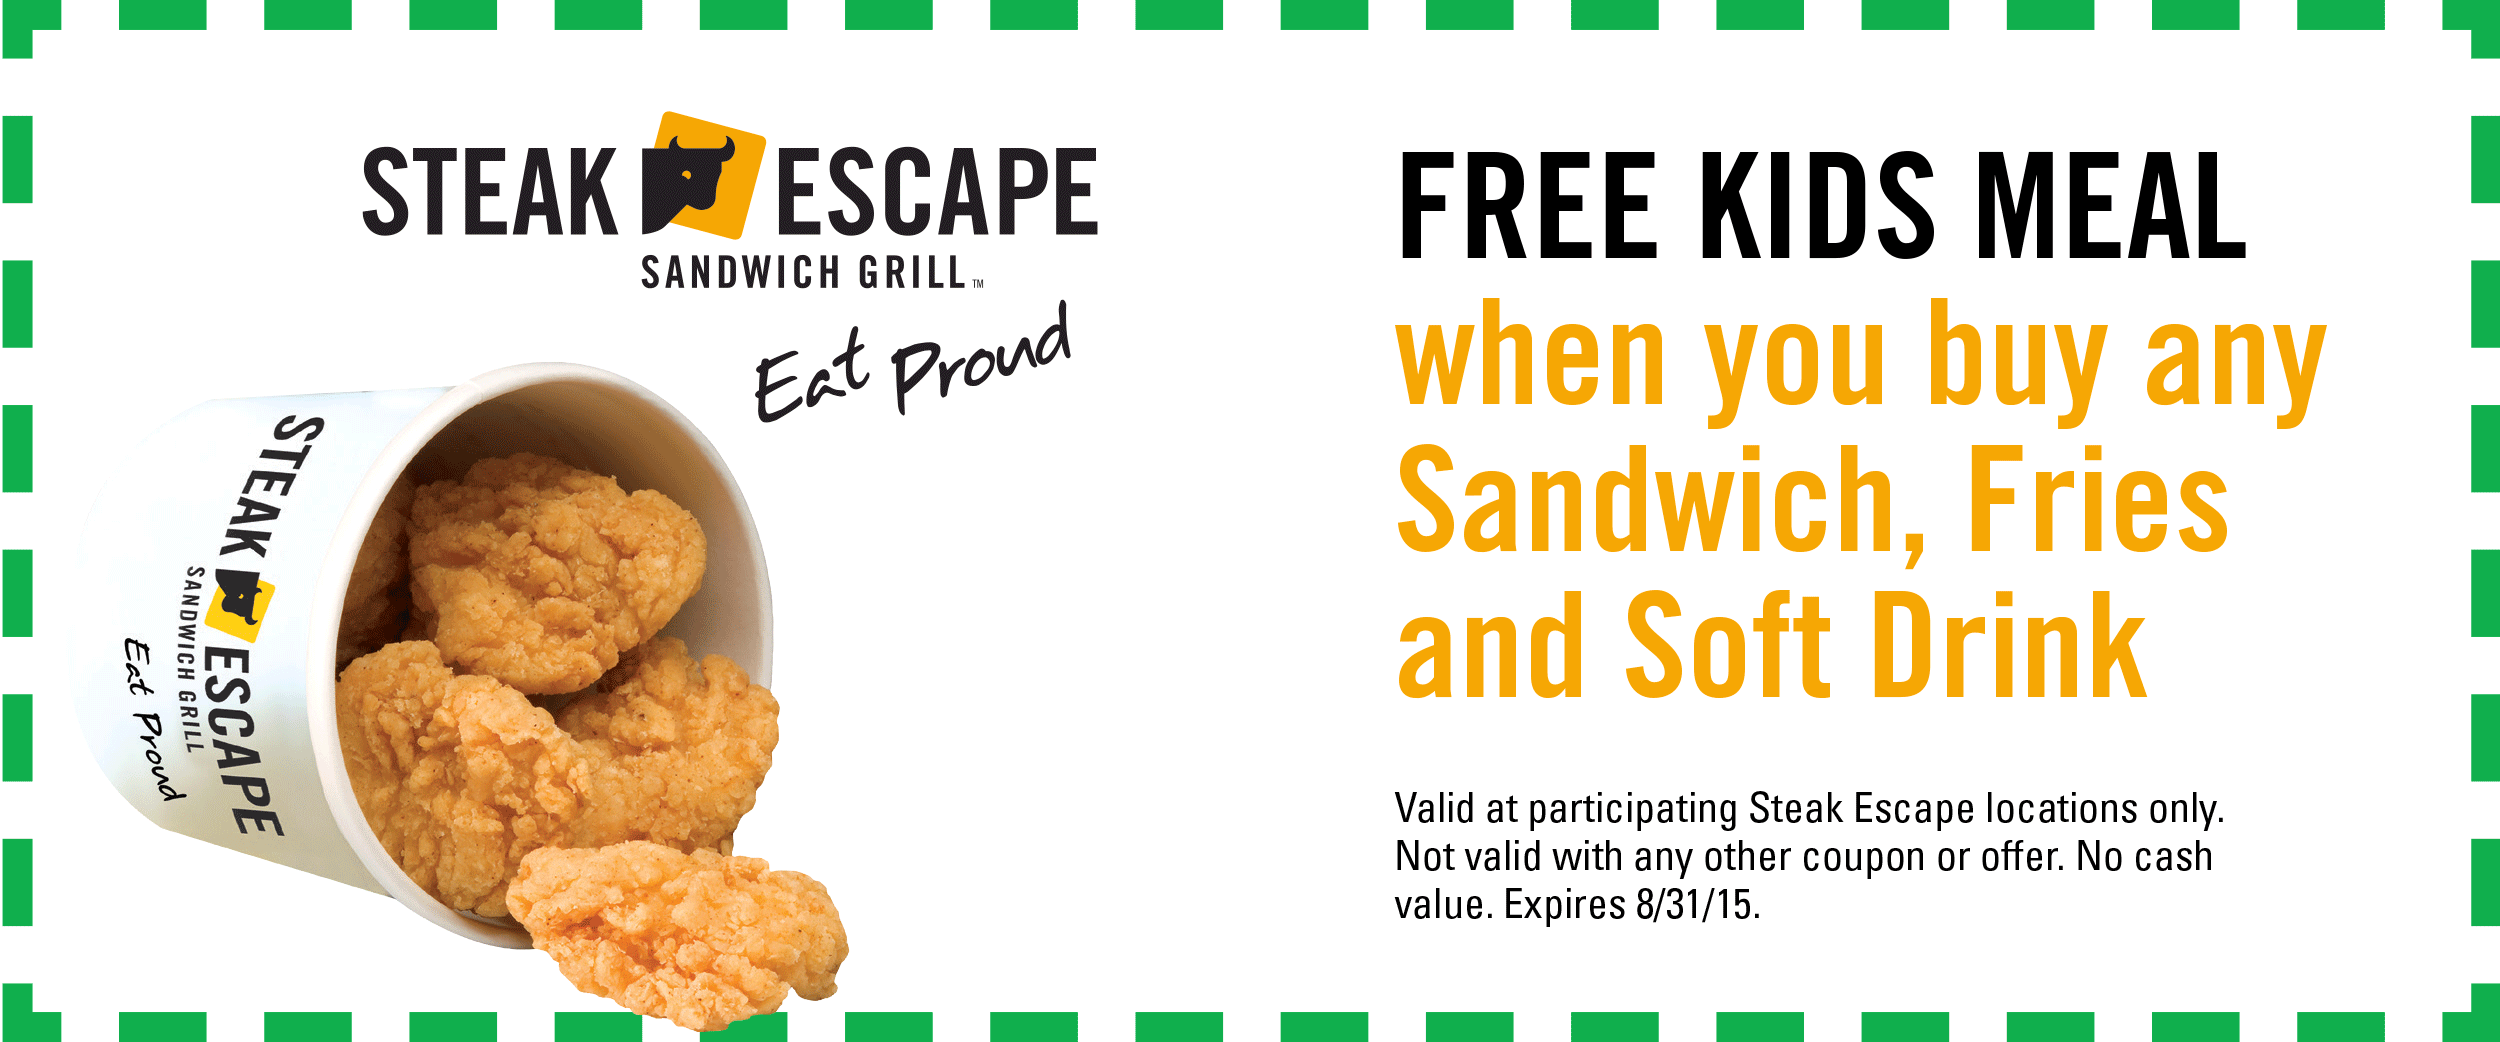 Steak Escape Coupon November 2018 Free kids meal with yours at Steak Escape sandwich grill